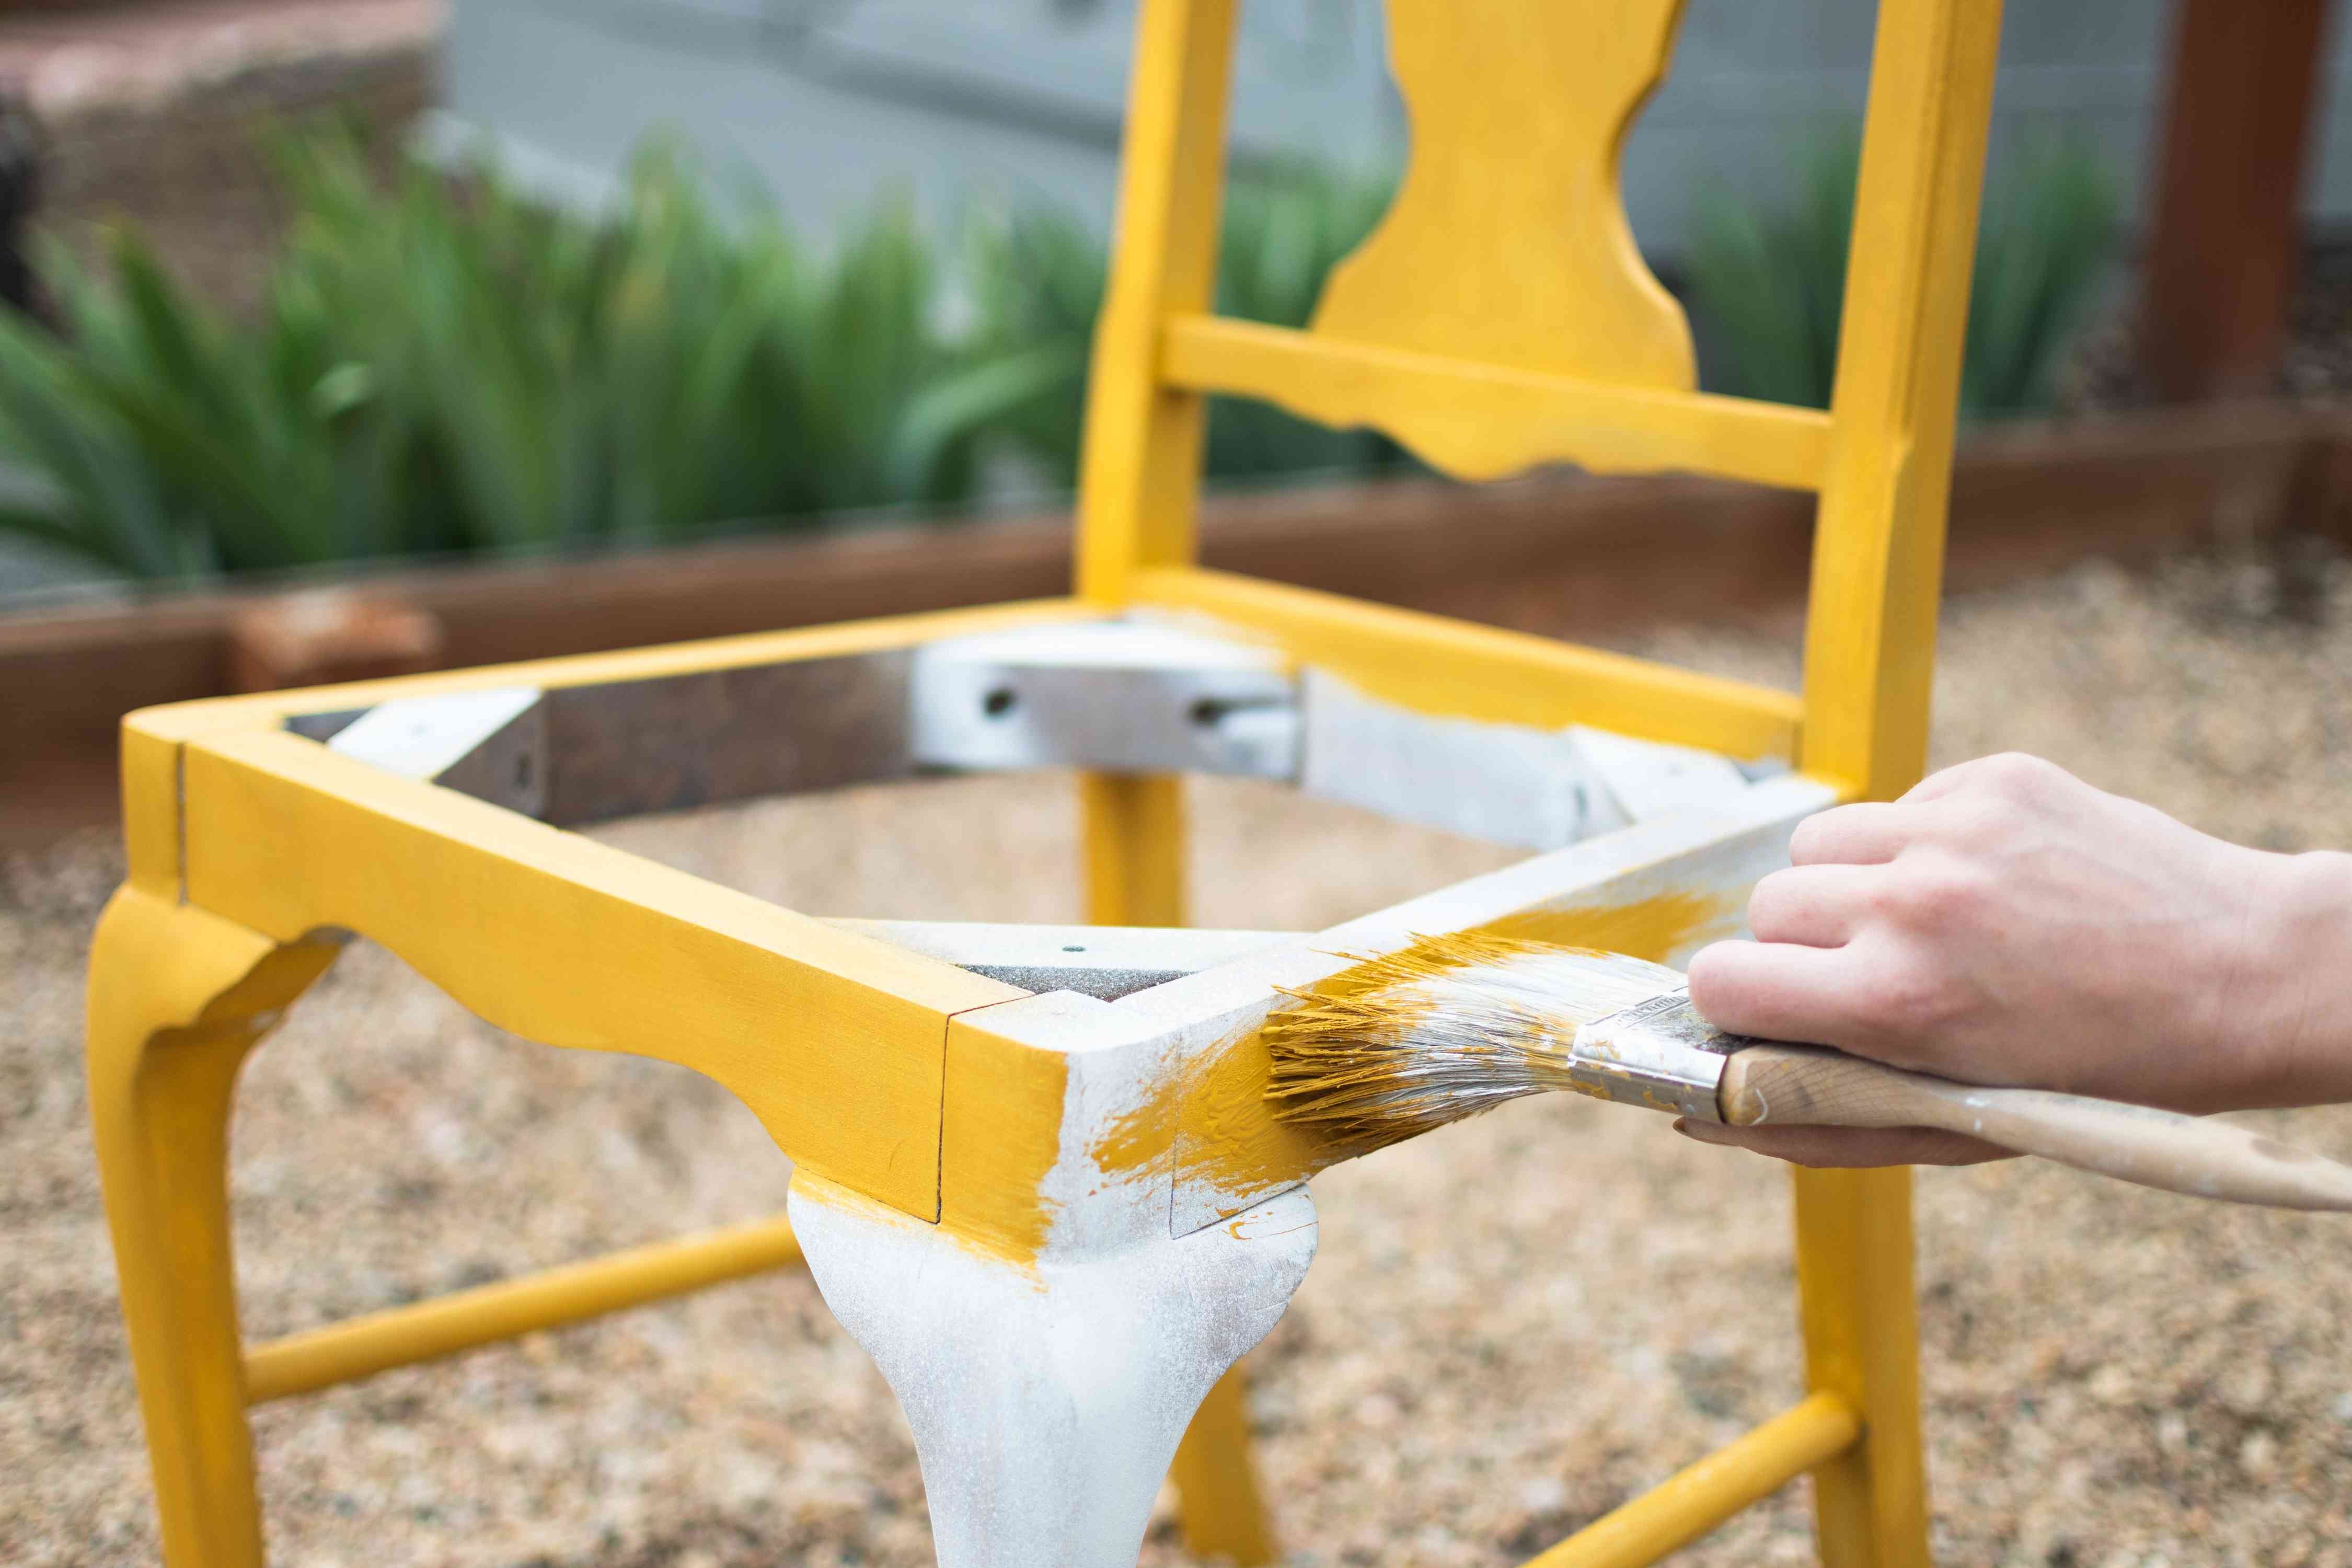 Wooden chair painted with yellow paint over white primer paint with paint brush